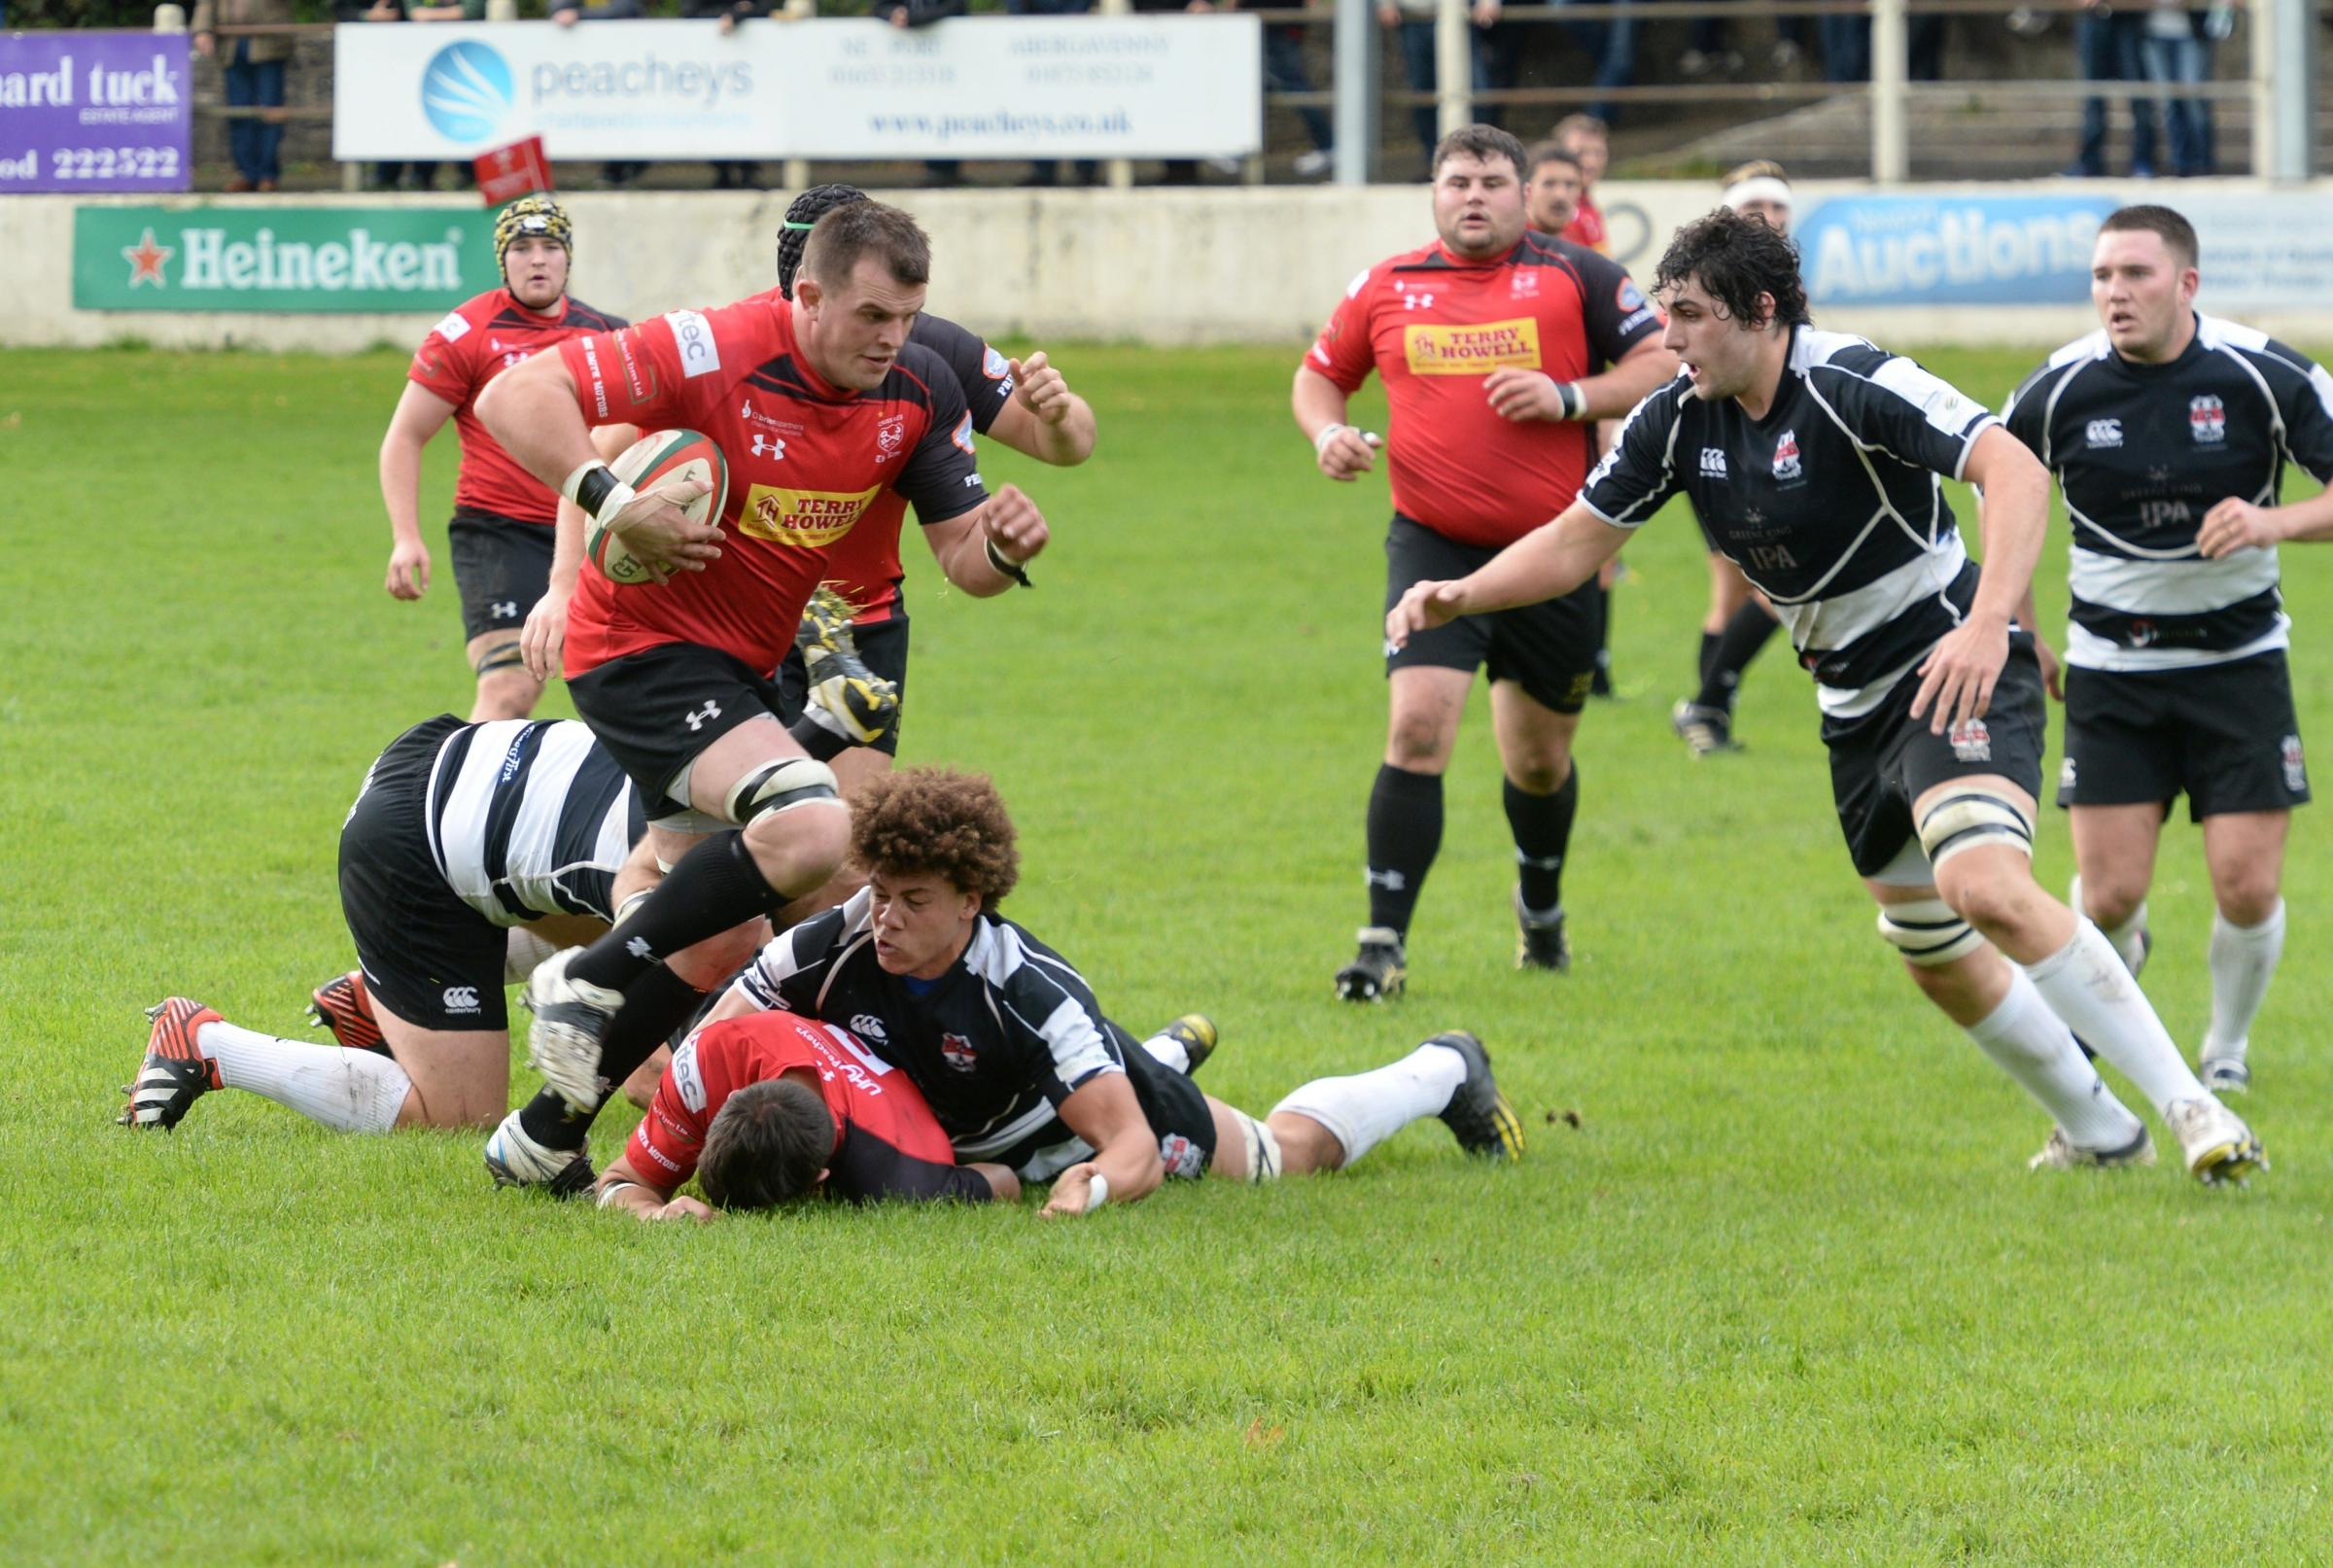 EARLY DAYS: Cory Hill (right), now a Wales lock, closes in on Danny Hodge in the game between Moseley and Cross Keys in 2013